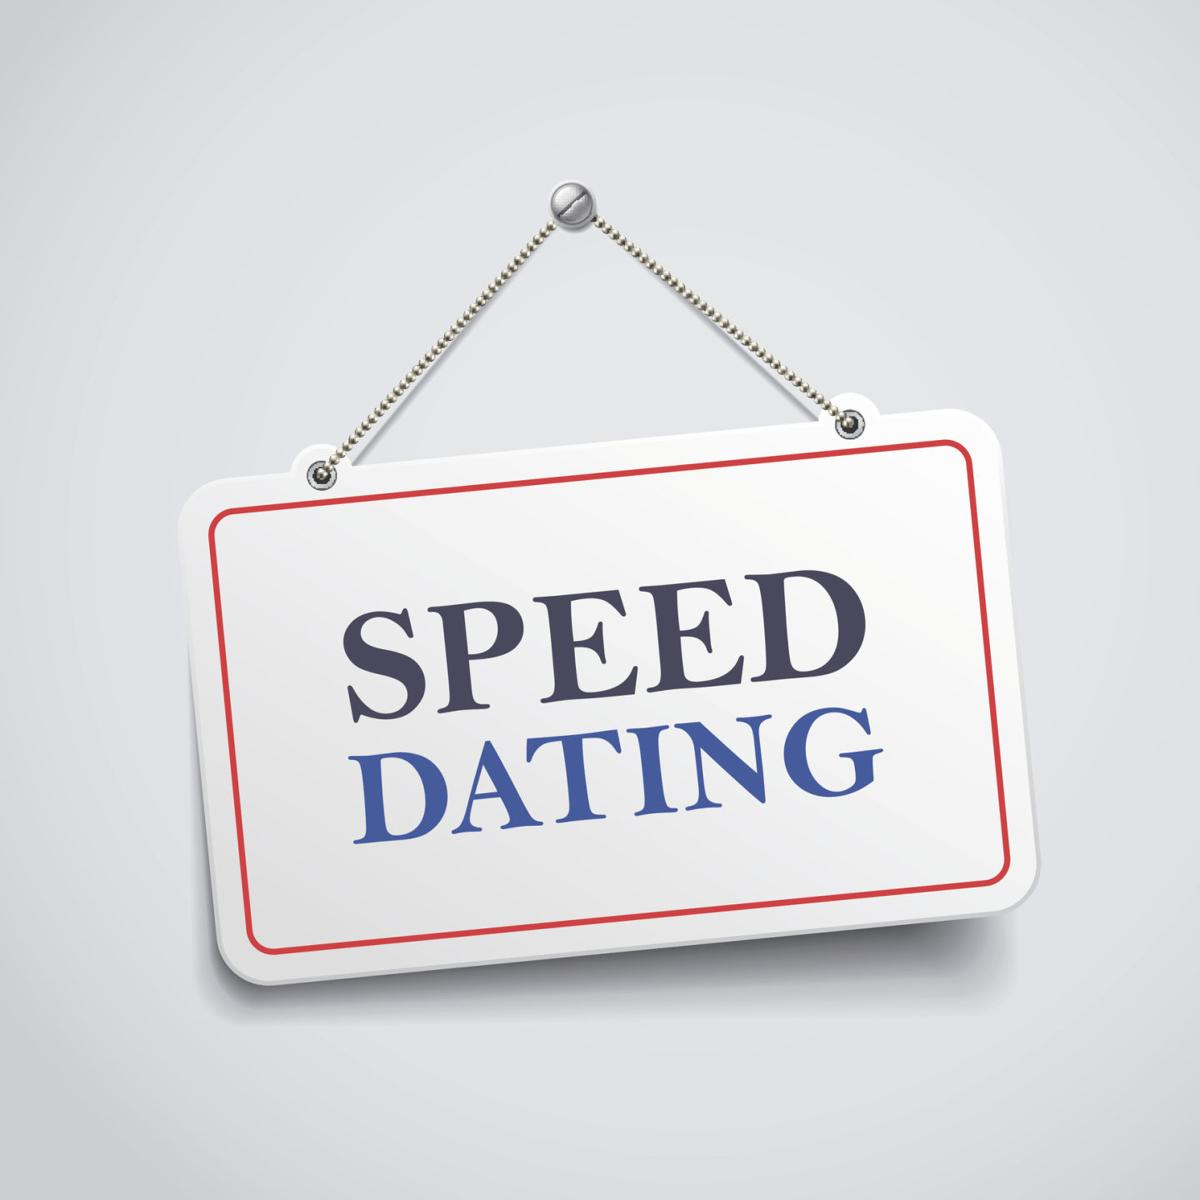 speed dating for 50s